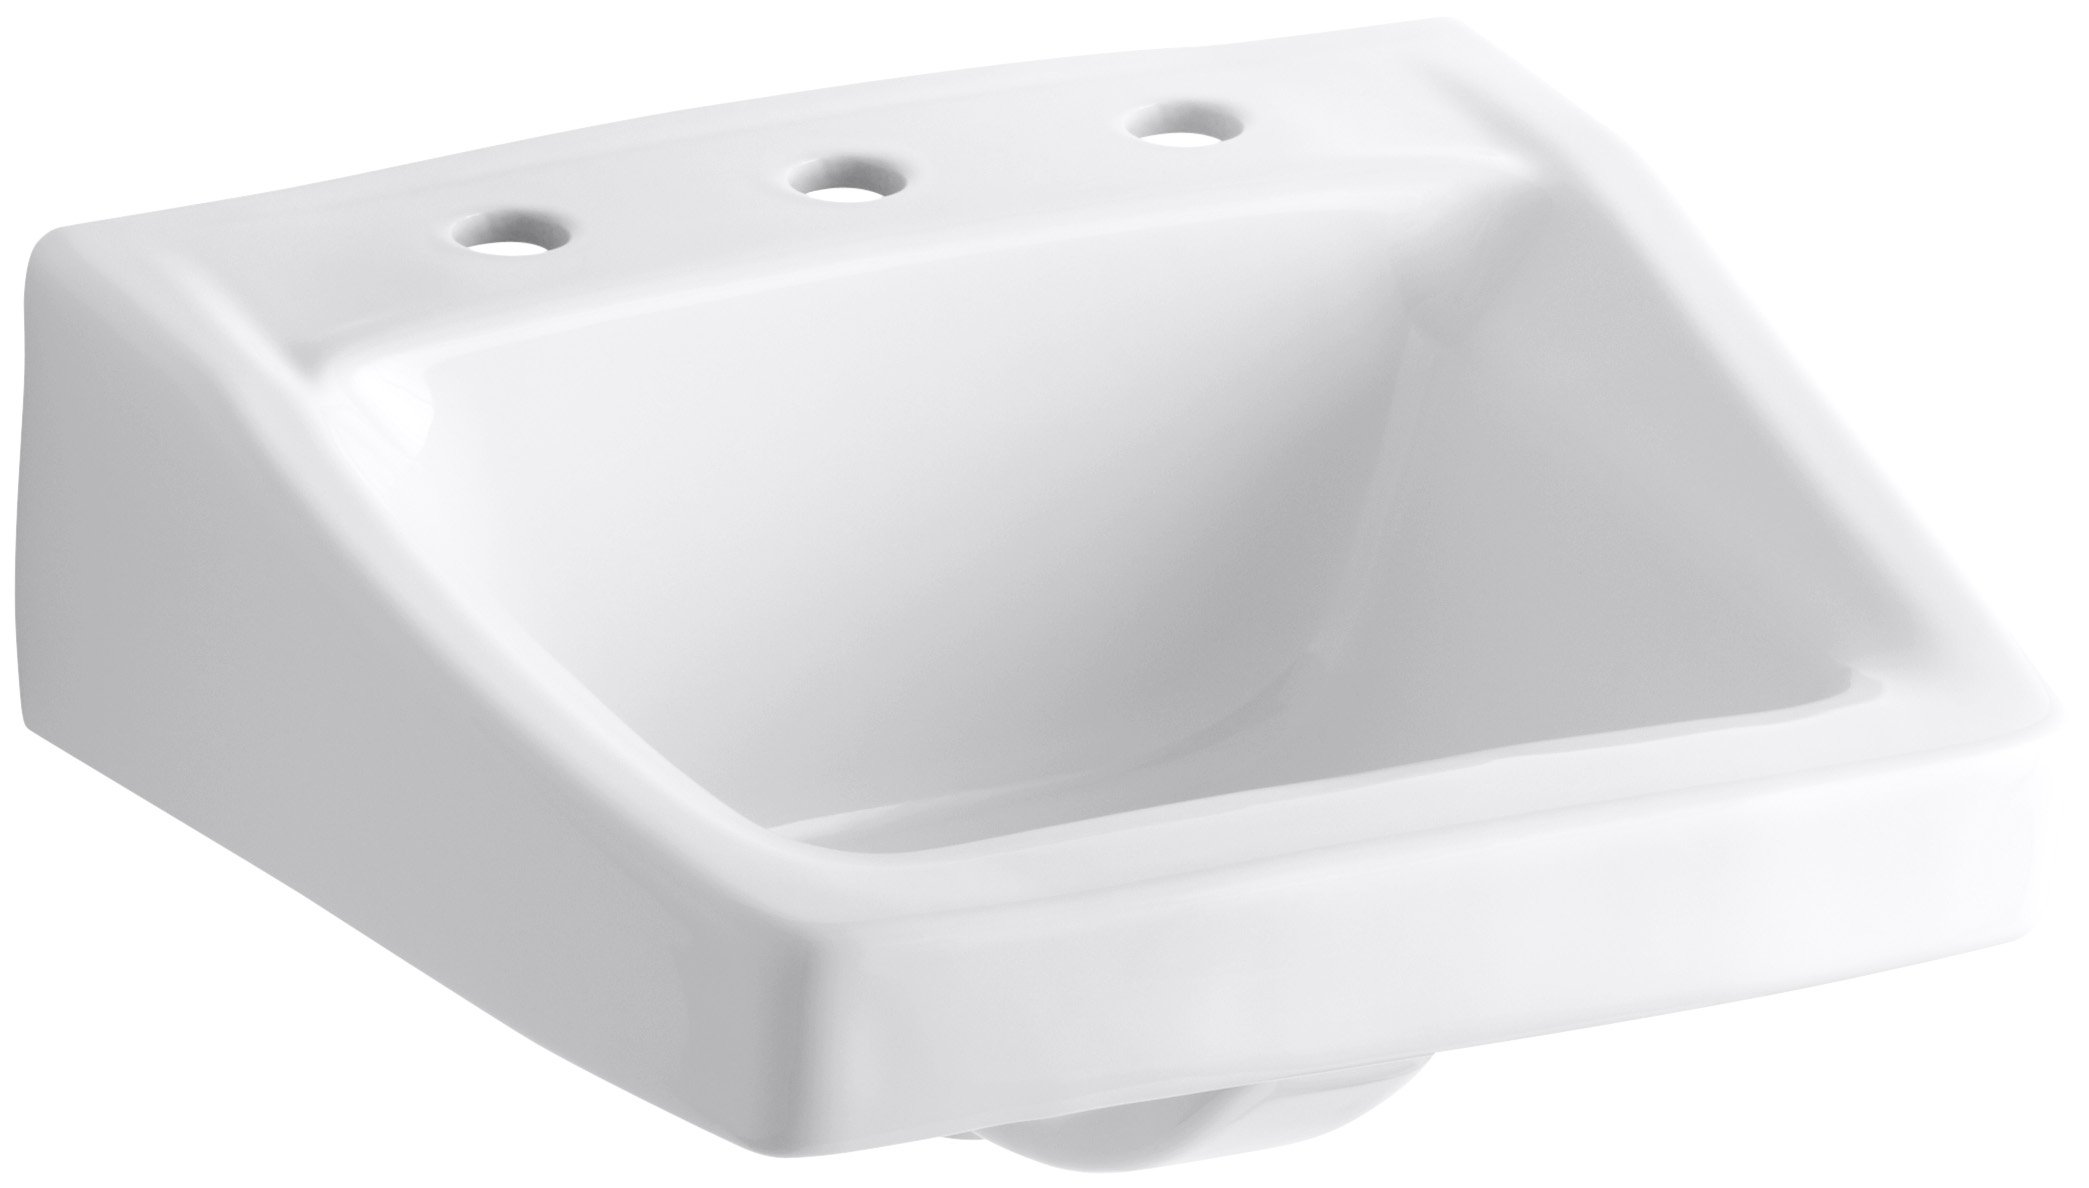 KOHLER K-1724-0 Chesapeake Wall-Mount Bathroom Sink, White by Kohler